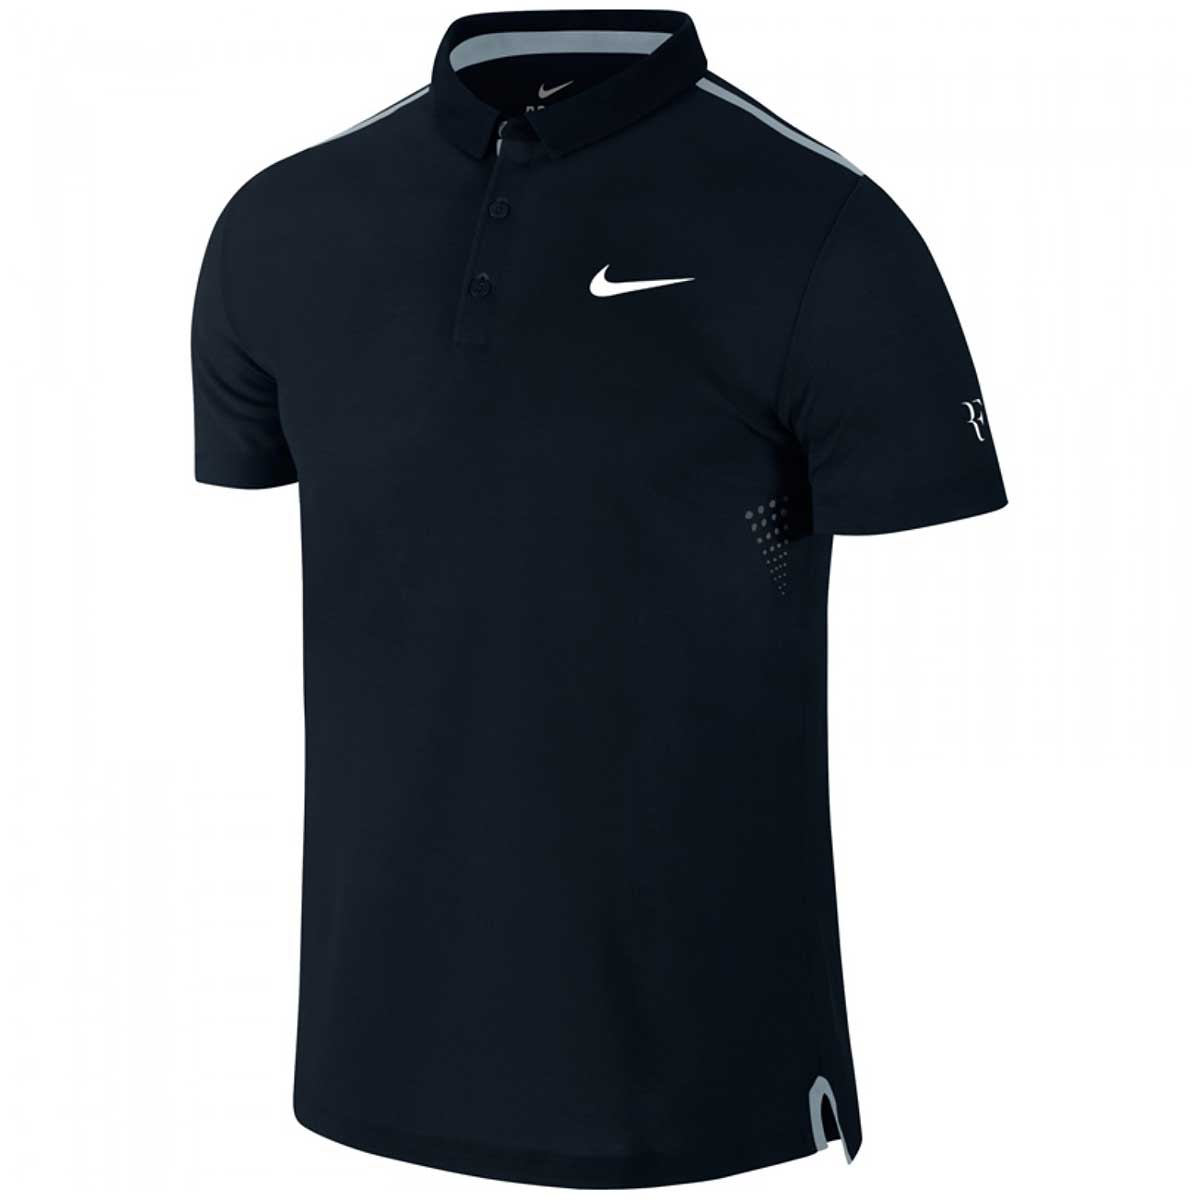 Buy Nike RF Advantage Premier Polo T-Shirt (Black) Online 440147a30a